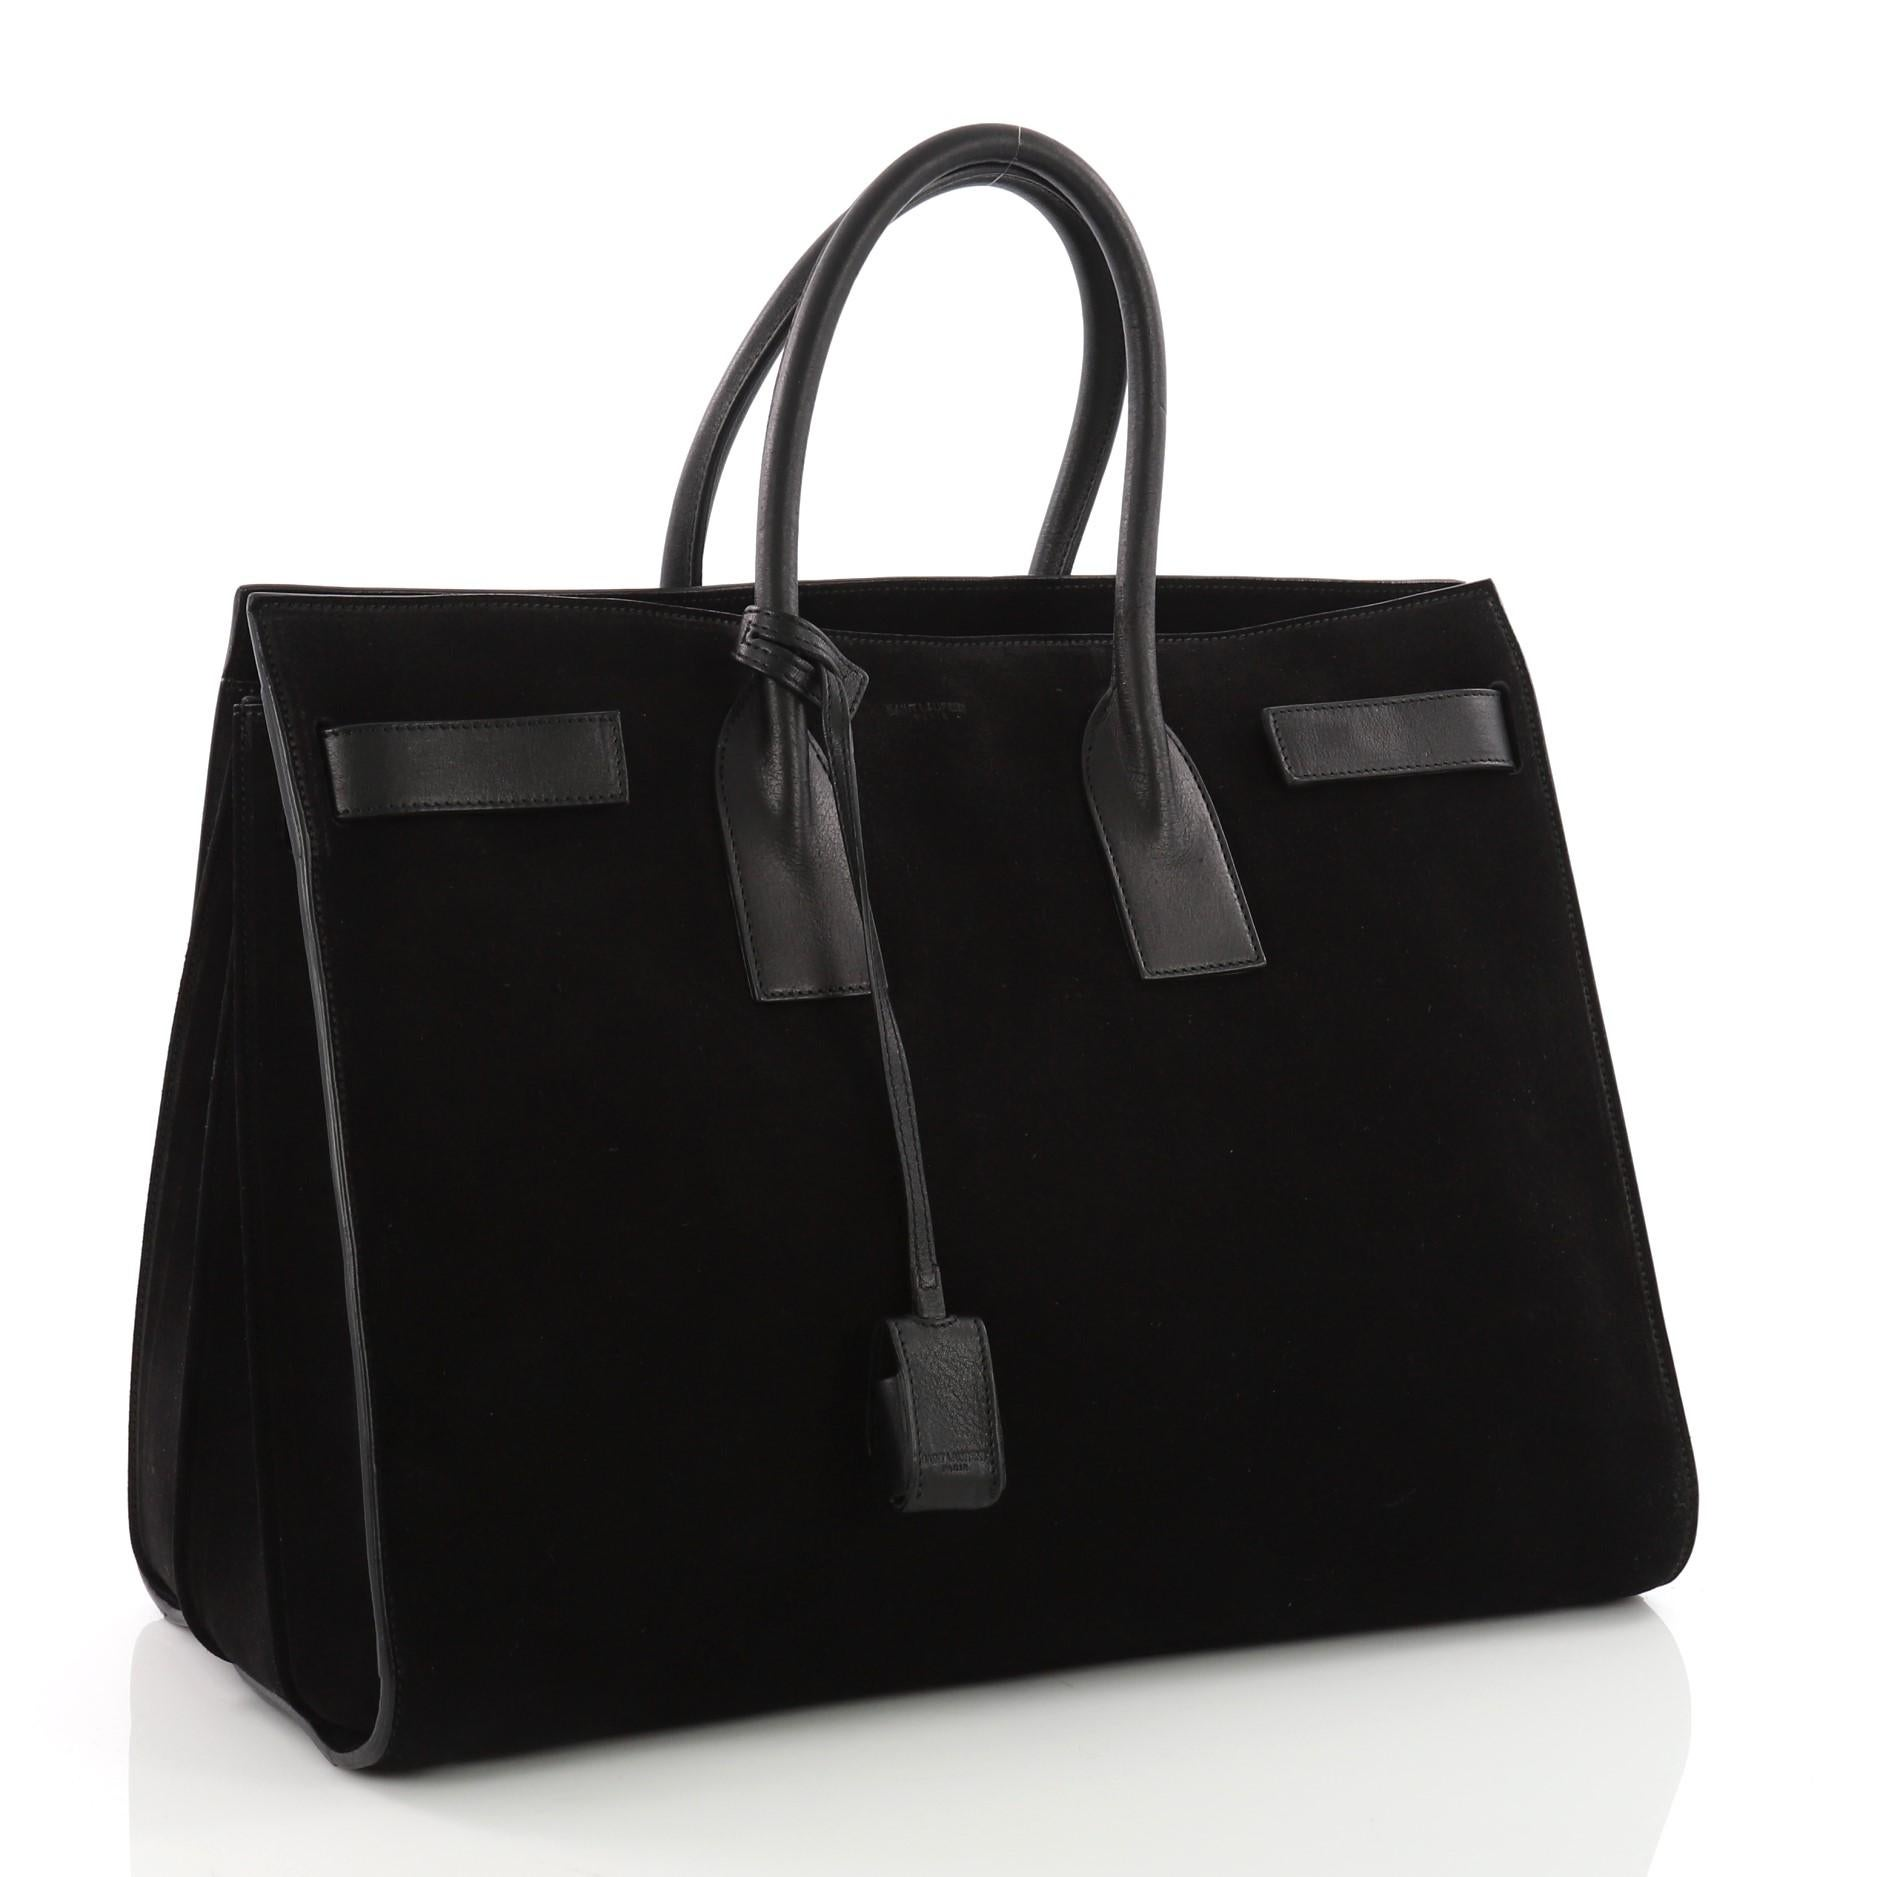 Sac Jour Large Handbag De Saint Laurent Suede 80NnvwmO